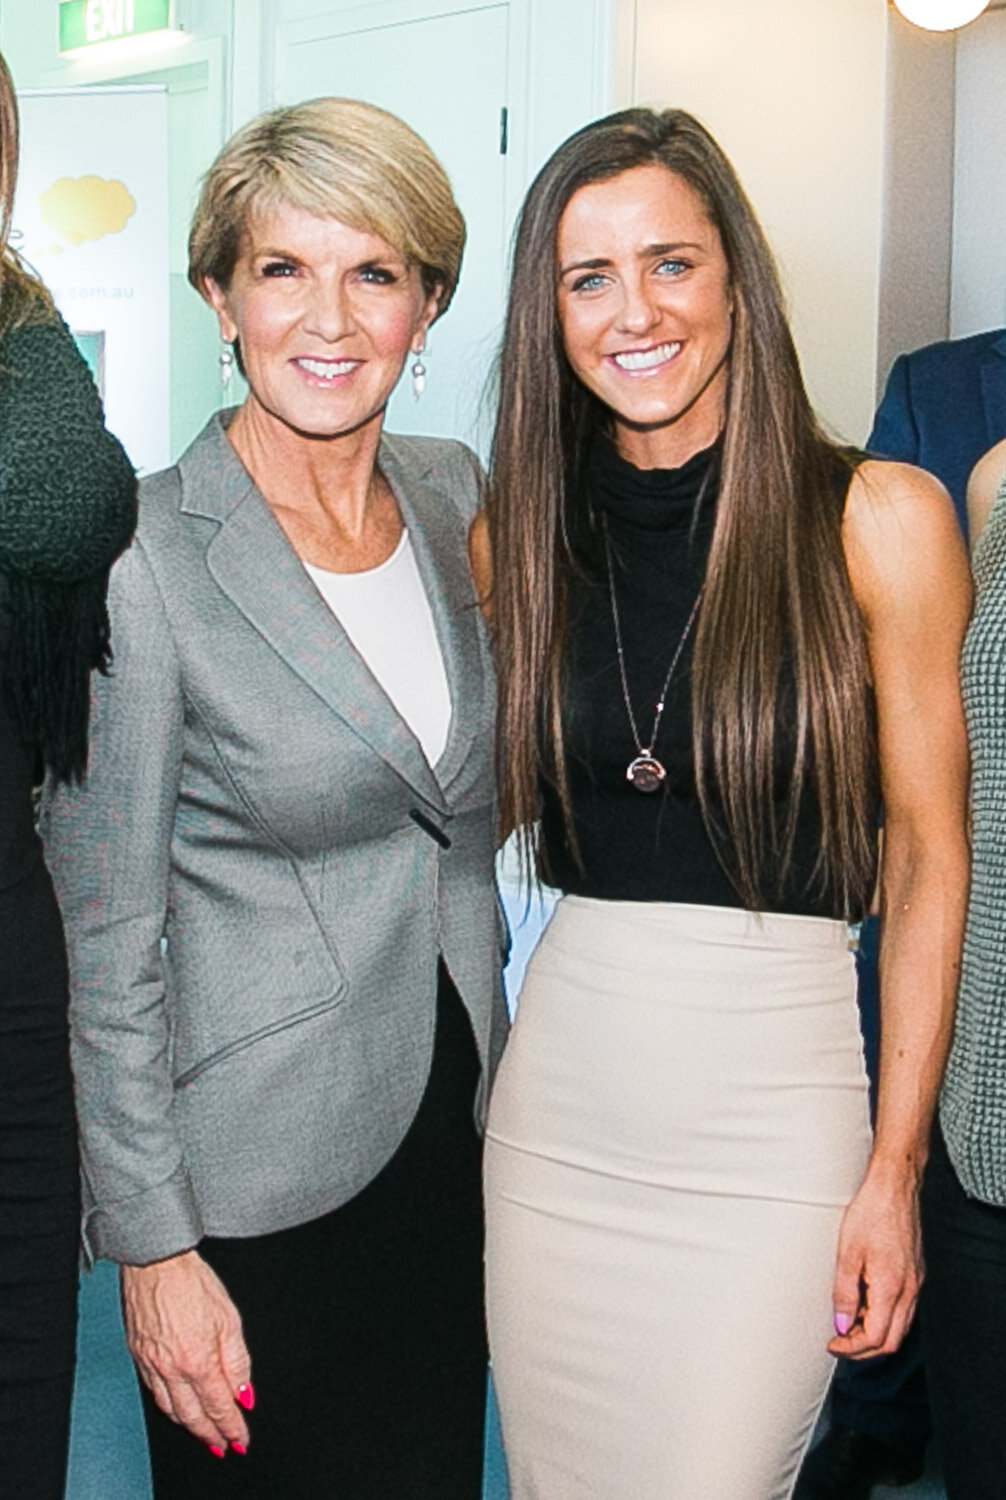 Photo with Foreign Minister, Julie Bishop.jpg